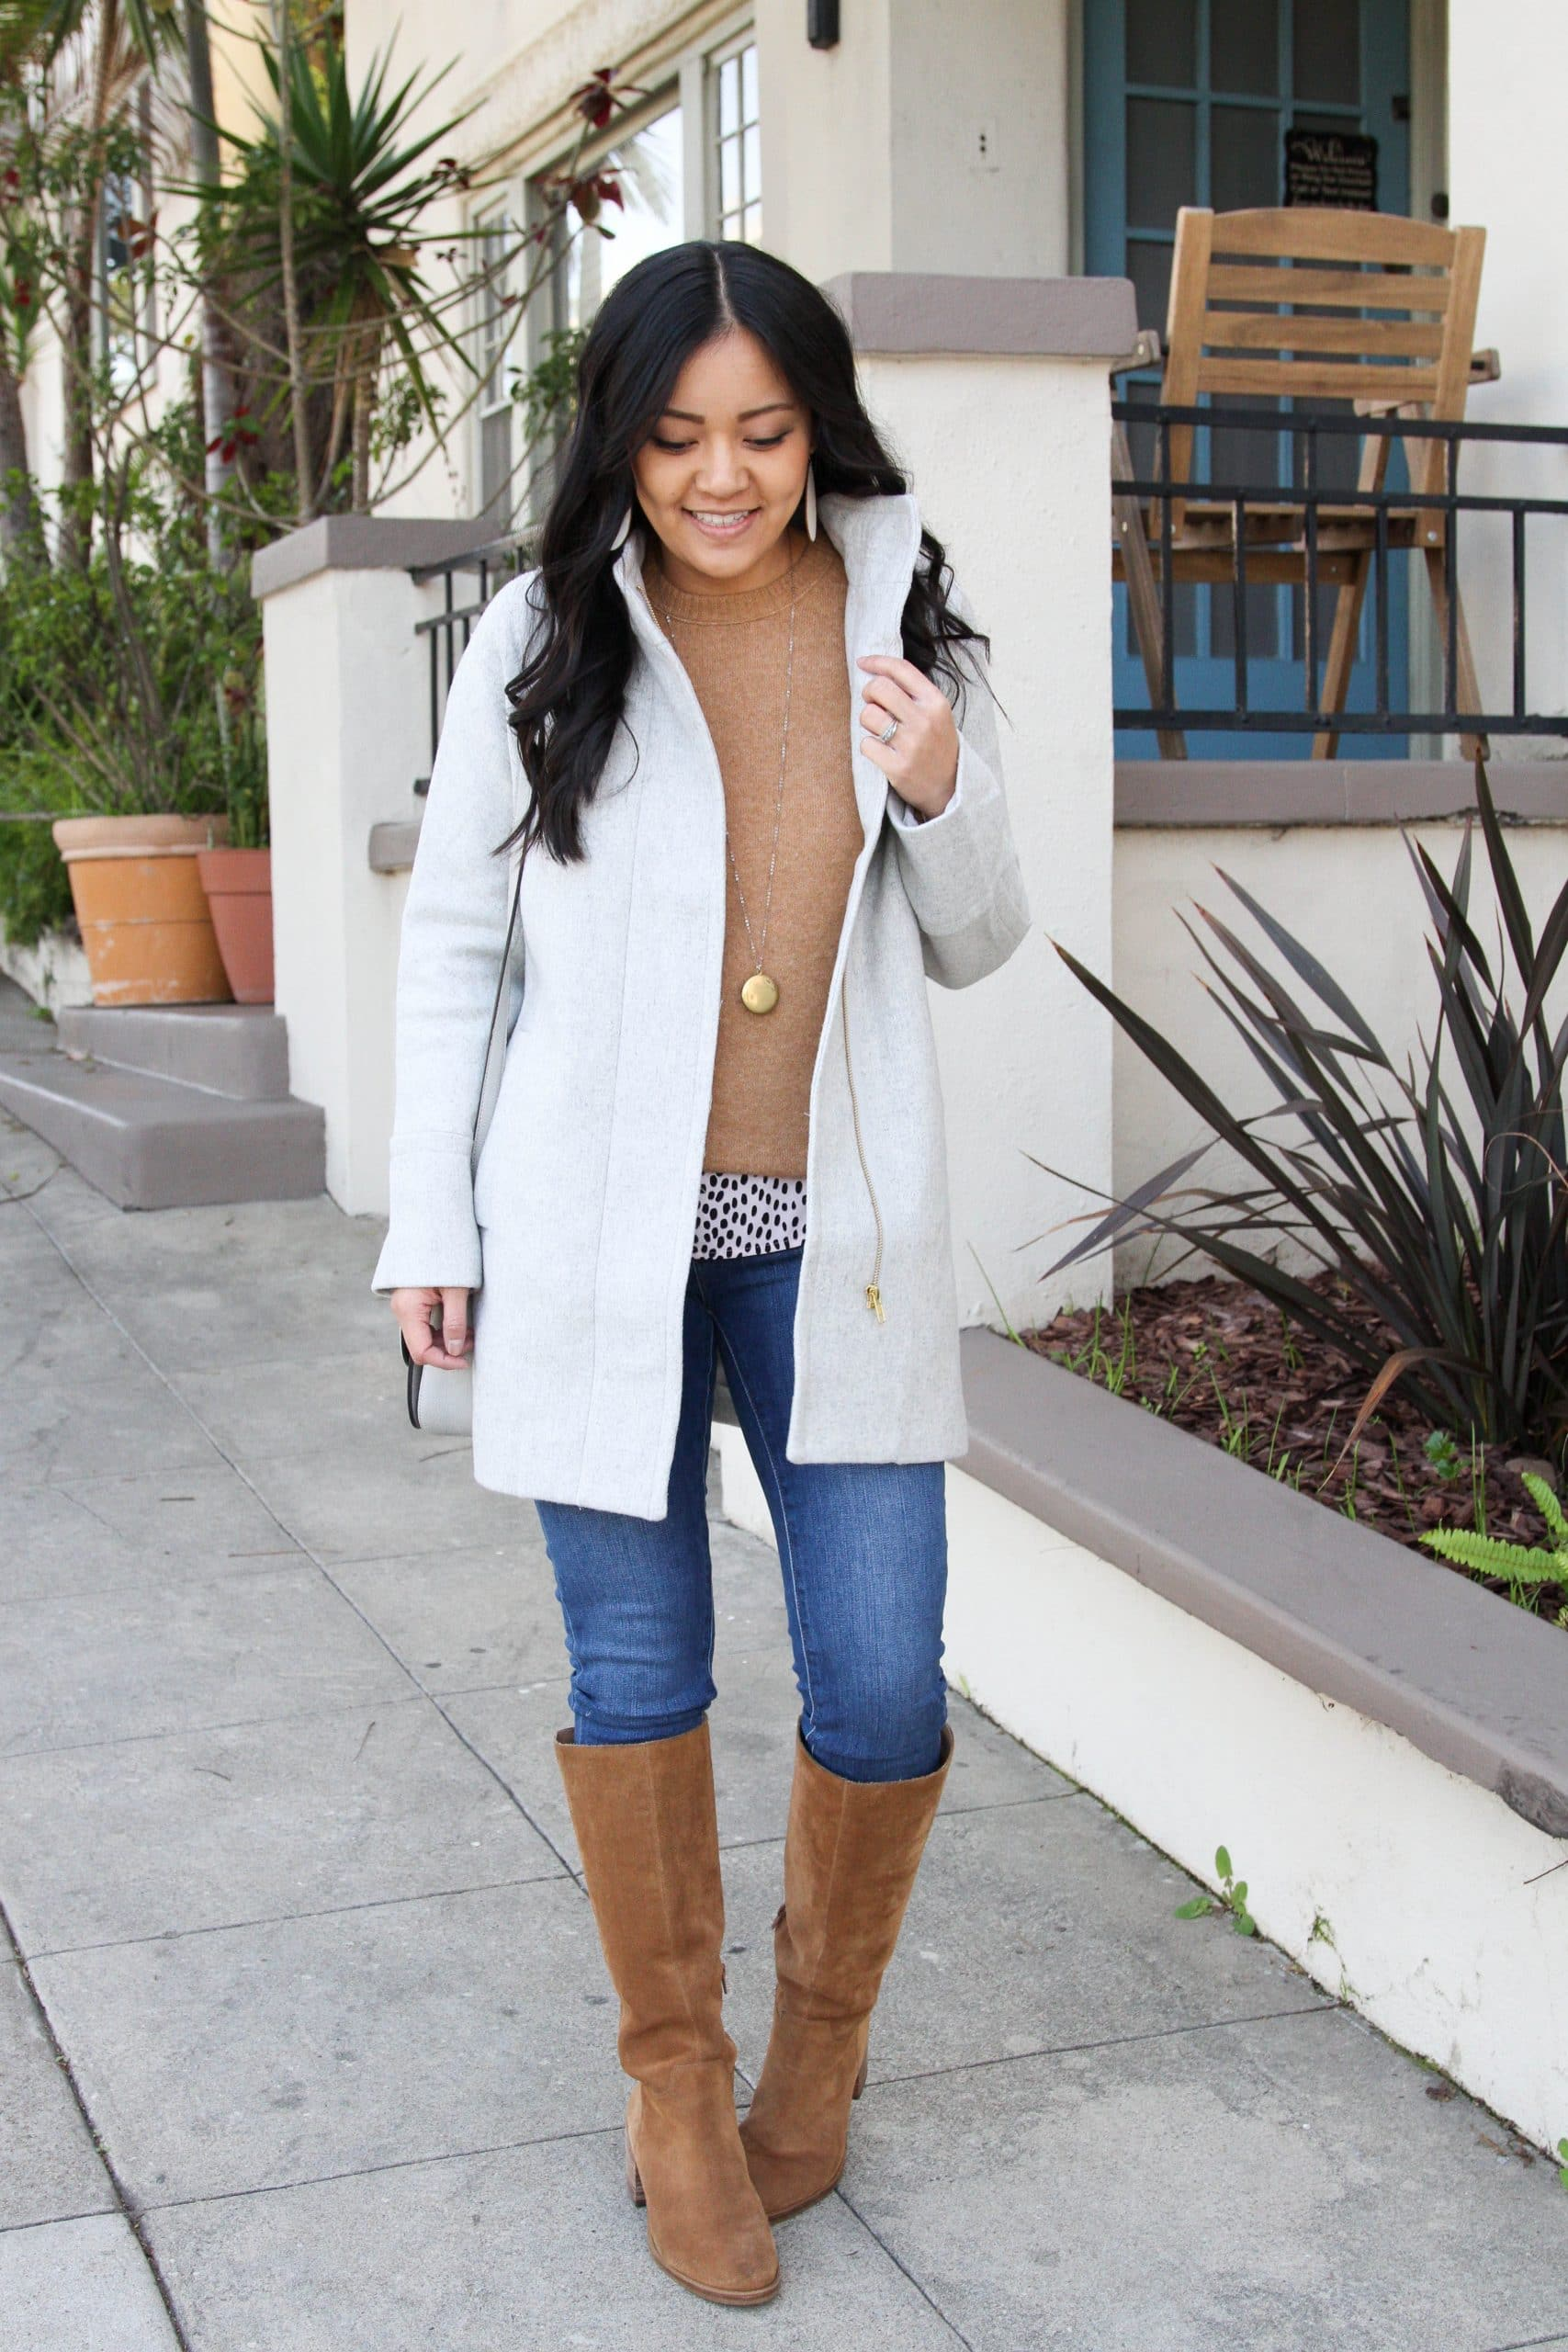 Winter Coat Layering Outfit: tan crewneck sweater + animal print top + cream wool coat + skinny jeans + cognac suede boots + gold pendant necklace + gray bag